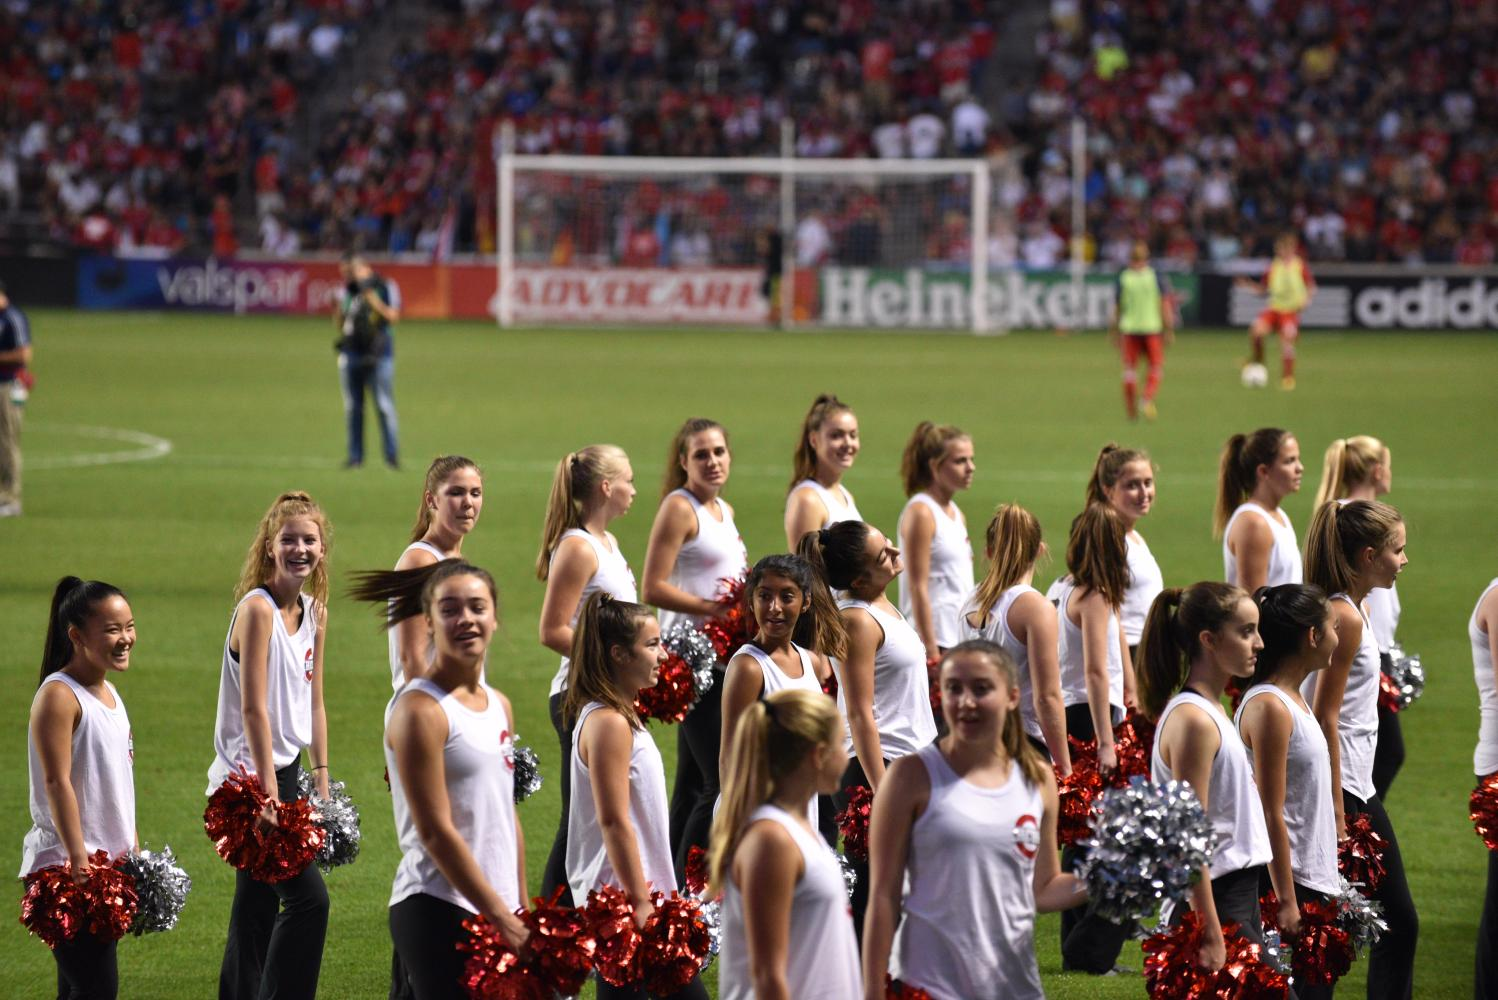 The poms team gets ready to perform in front of large crowd at Toyota Park during the halftime Chicago Fire game.